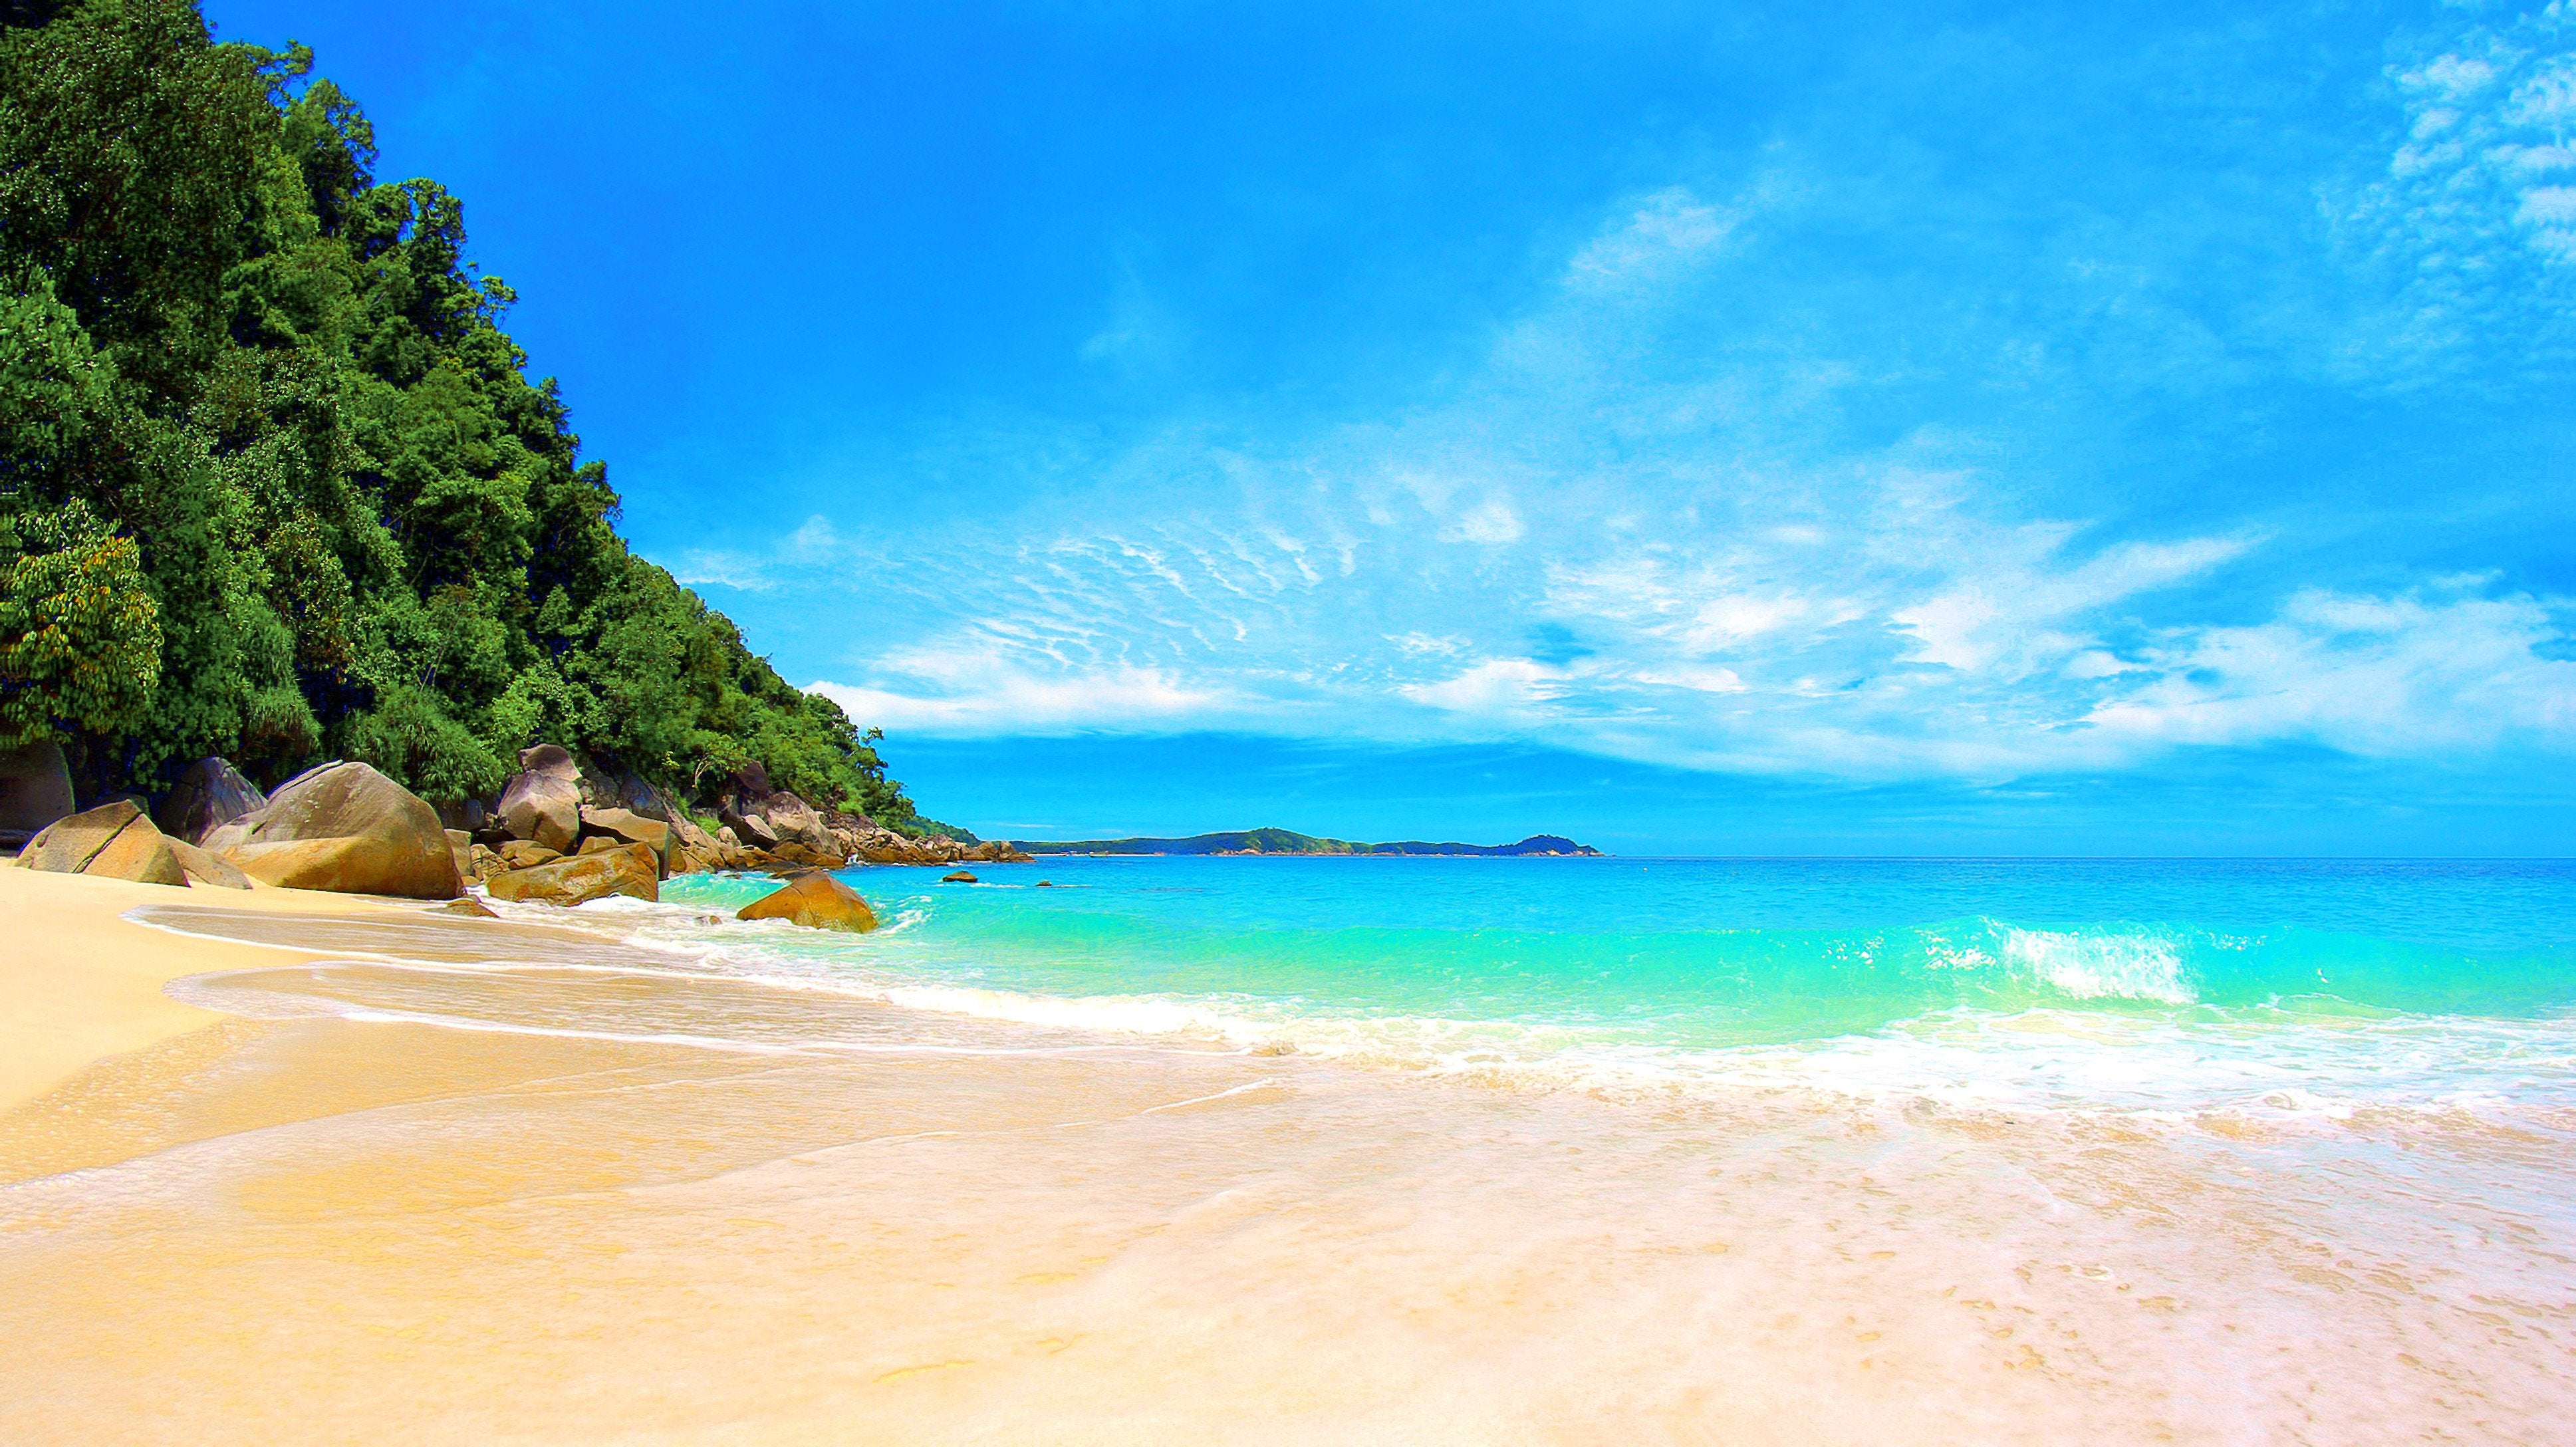 awesome tropical beach paradise wallpaper #128